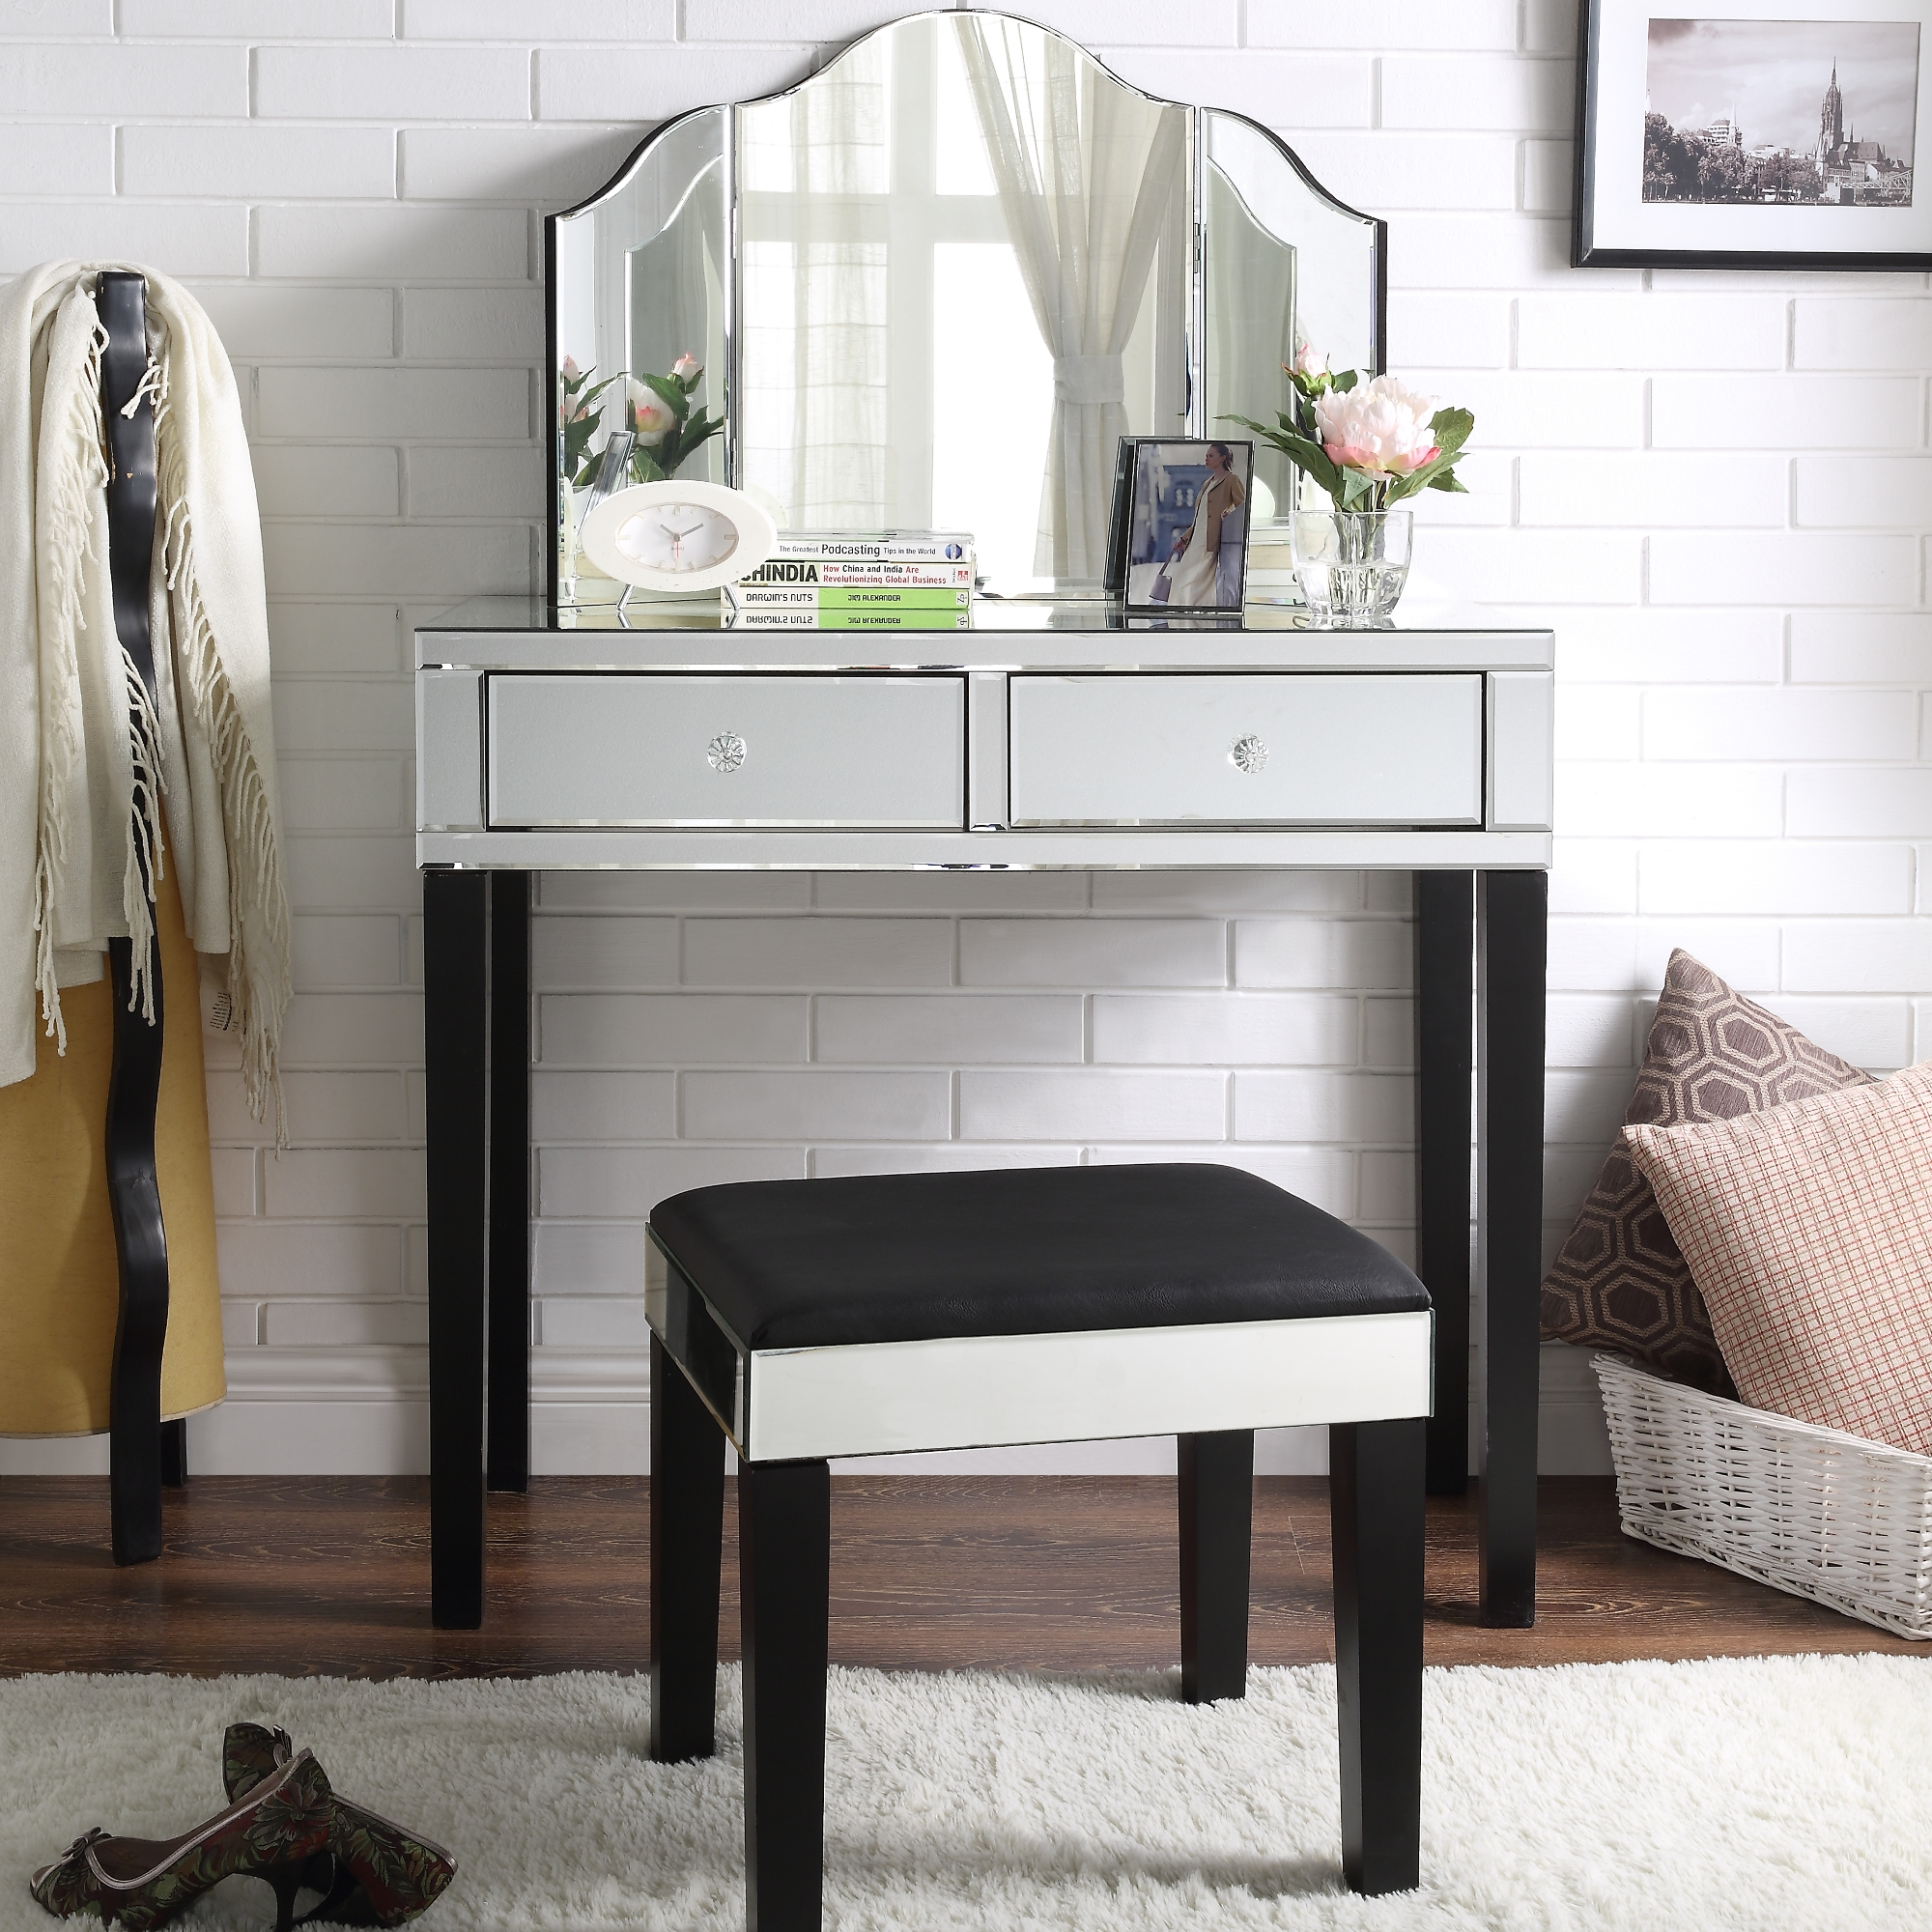 Inspired Home Black Jewelry Furniture Trifold Mirror